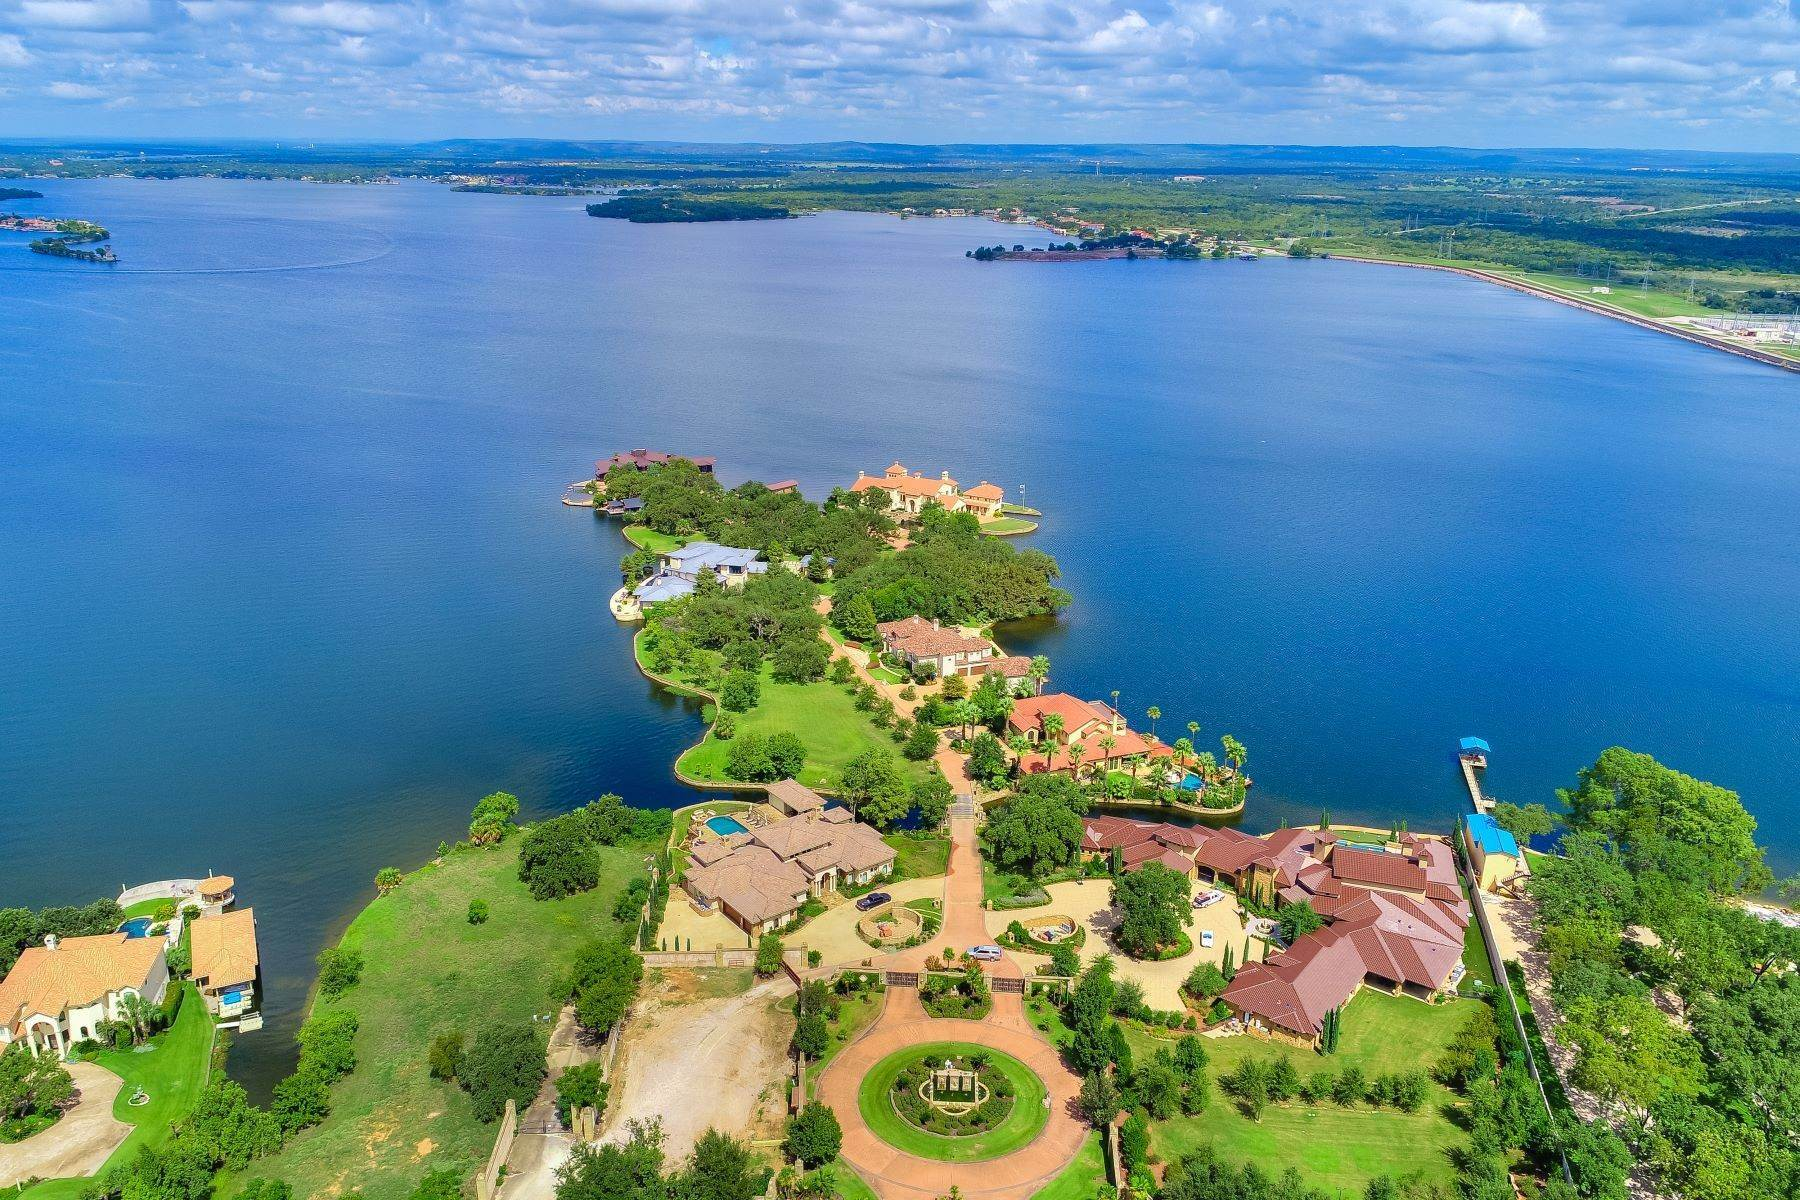 Property for Sale at Legacy Lots 7A and 7B Estate Drive // on Lake LBJ, Horseshoe Bay , TX 78657 Legacy Lots 7A and 7B Estate Drive // on Lake LBJ Horseshoe Bay, Texas 78657 United States